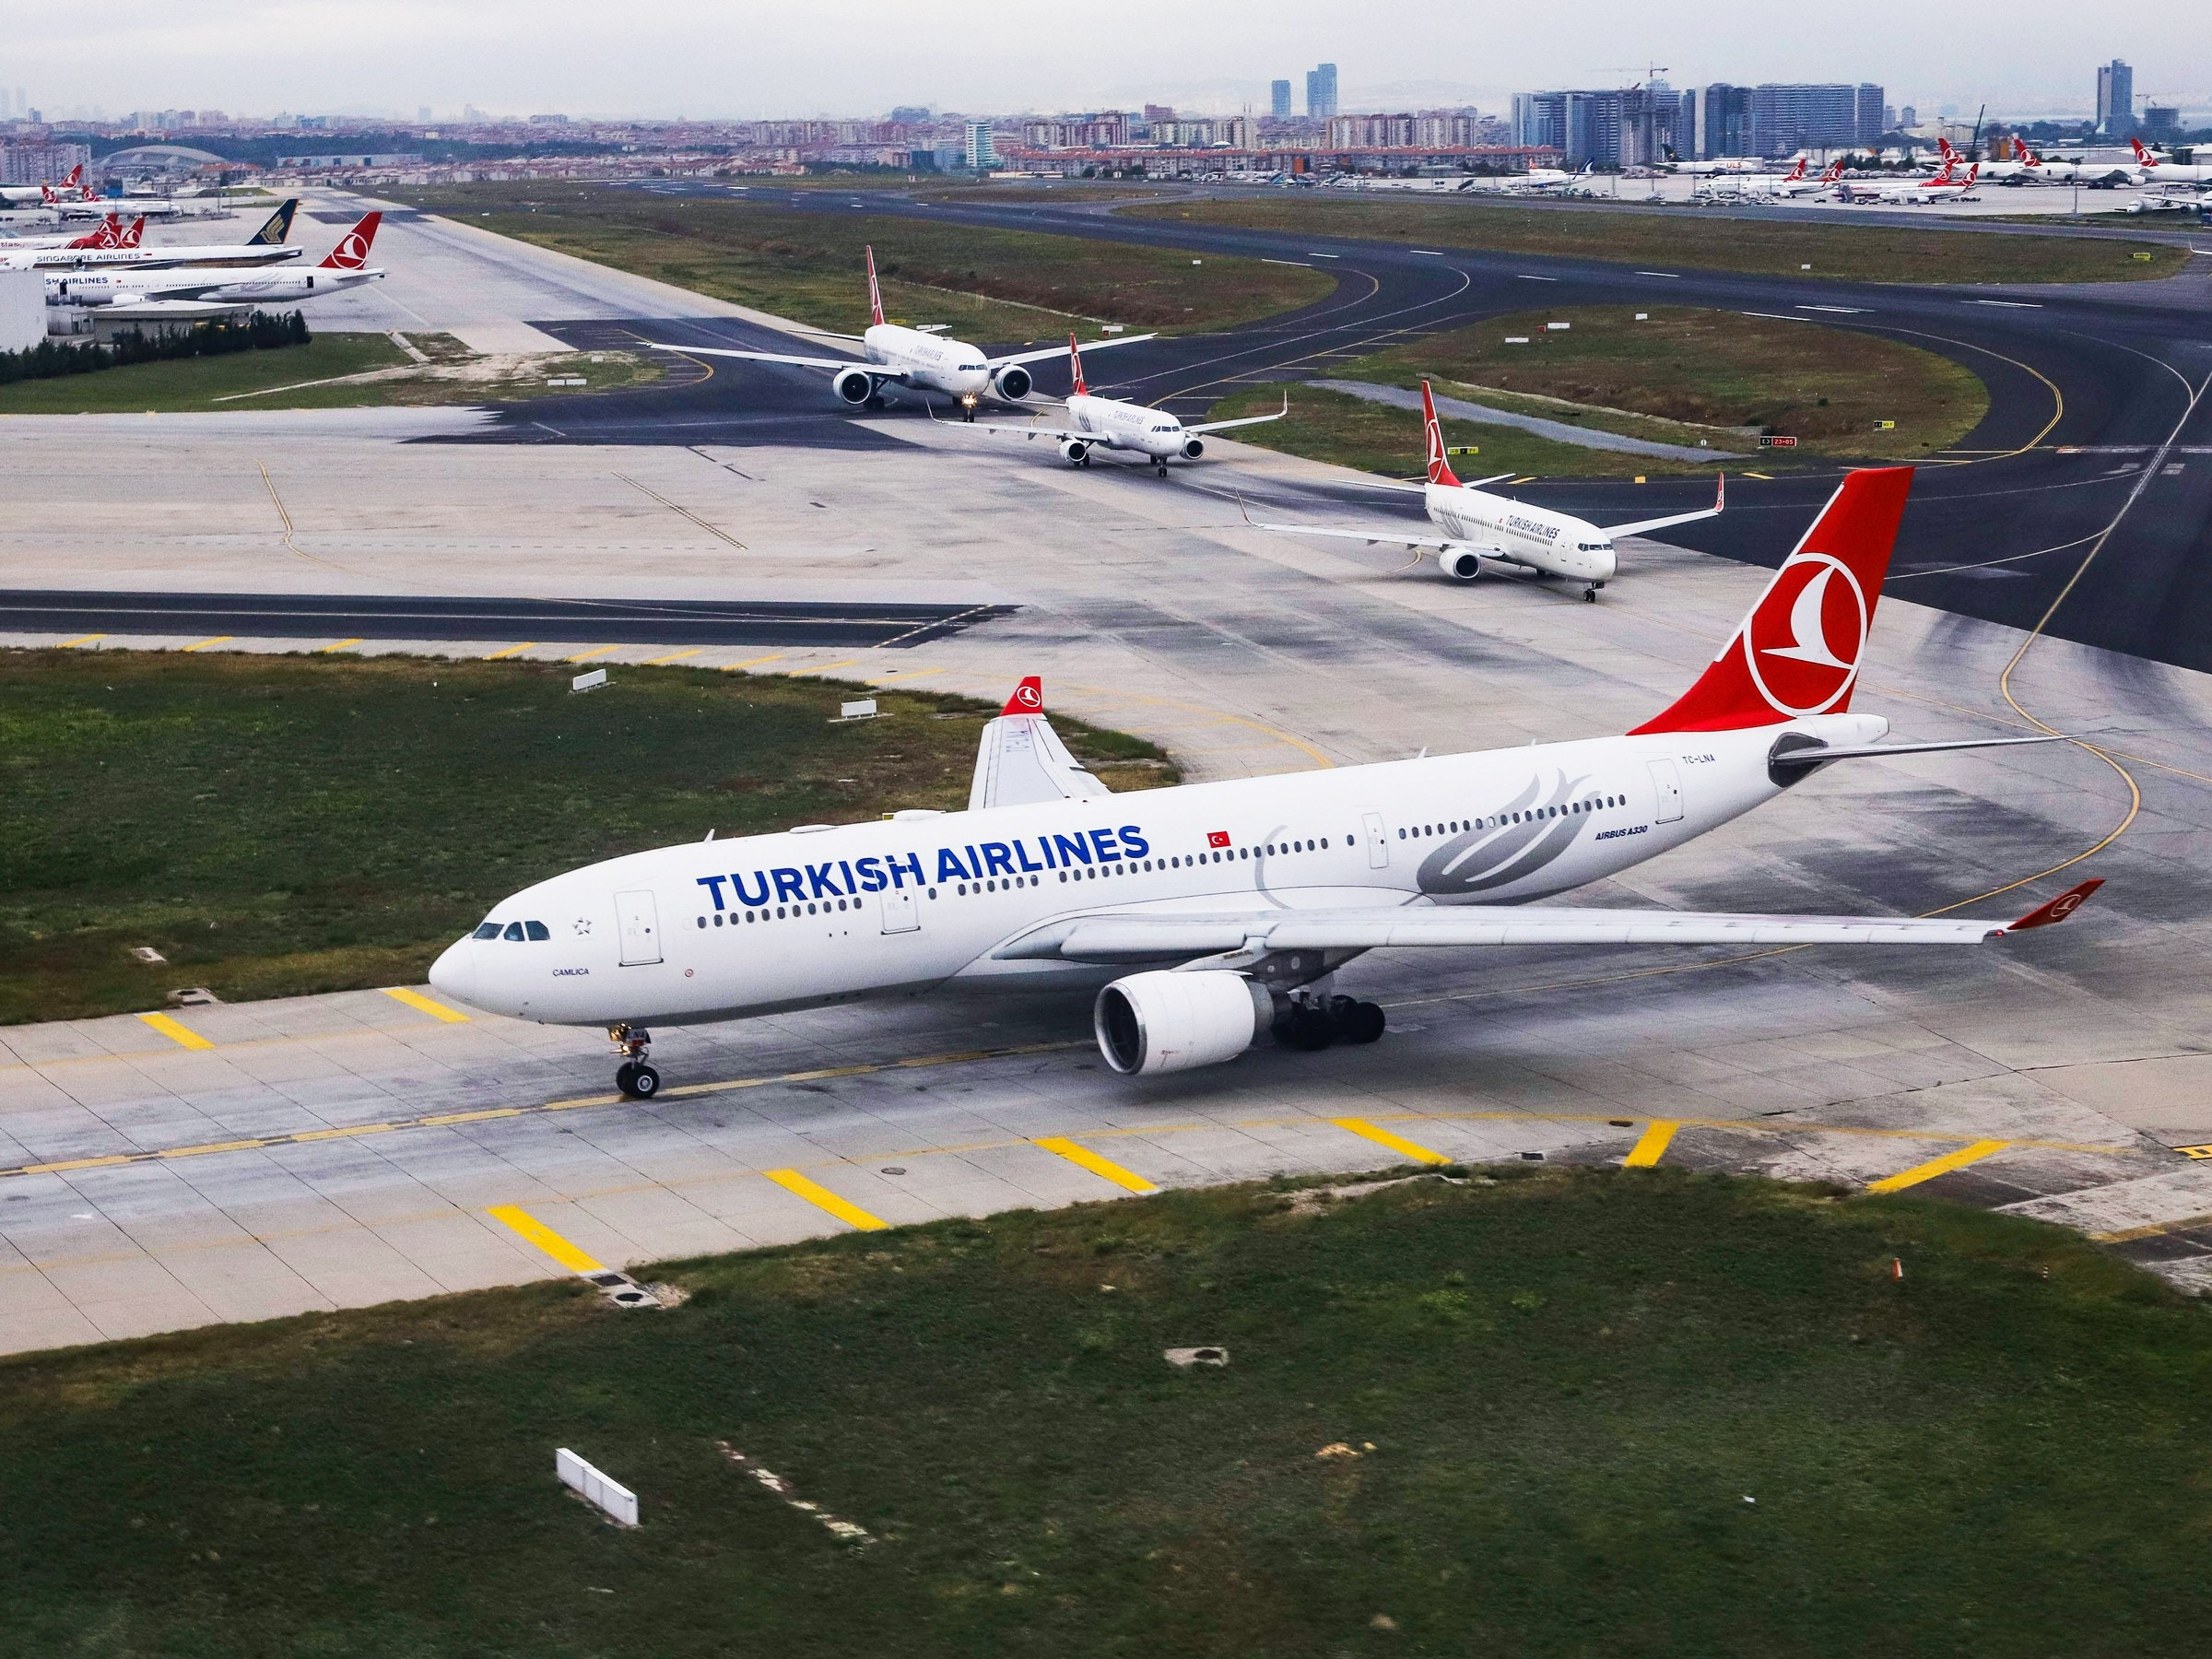 Lagos tracks 120 passengers on Turkish Airlines flight with Italian patient